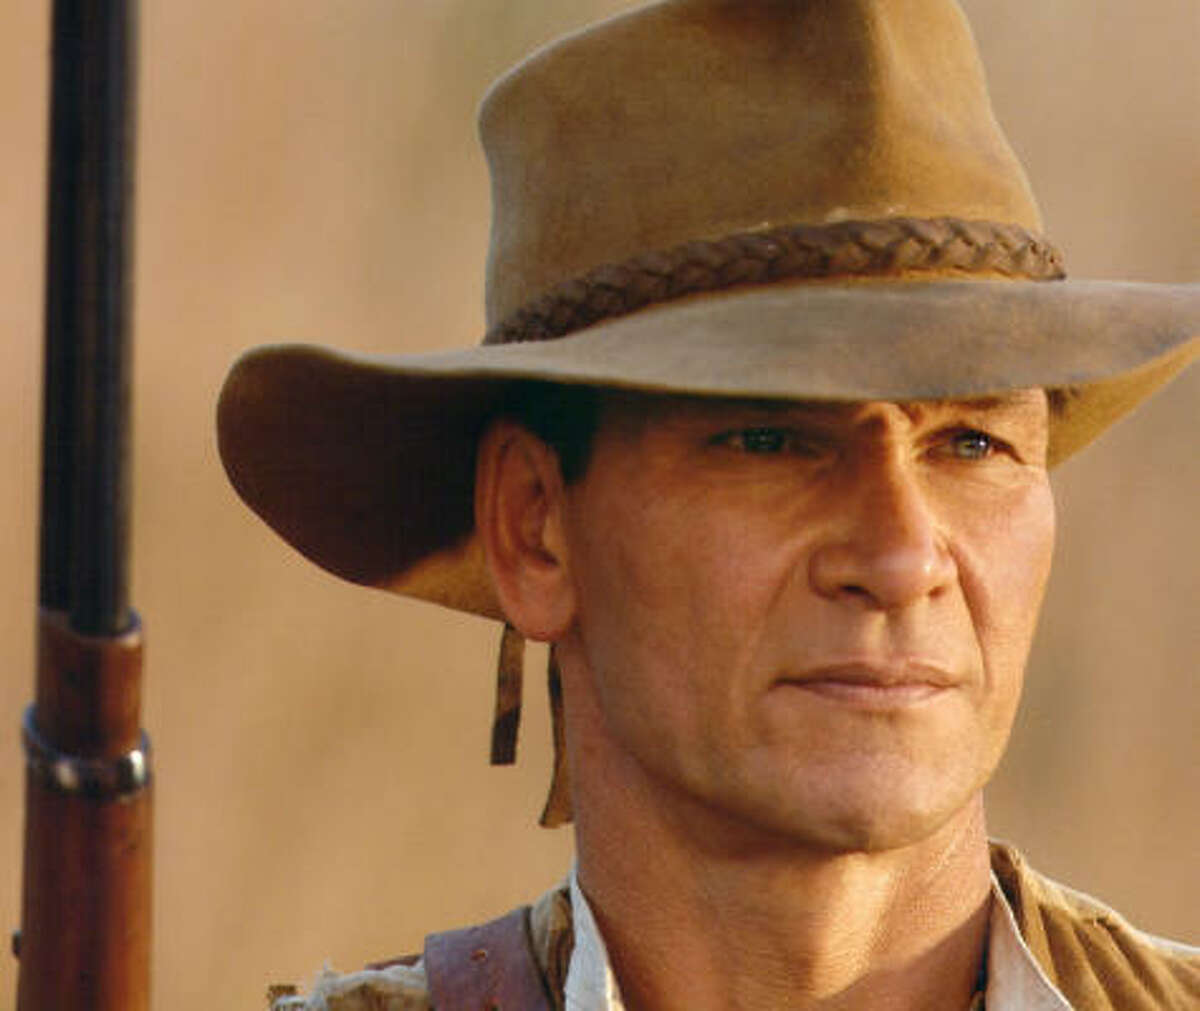 Patrick Swayze (here in a remake of King Solomon's Mines) was declared Sexiest Man Alive by People magazine in 1991.